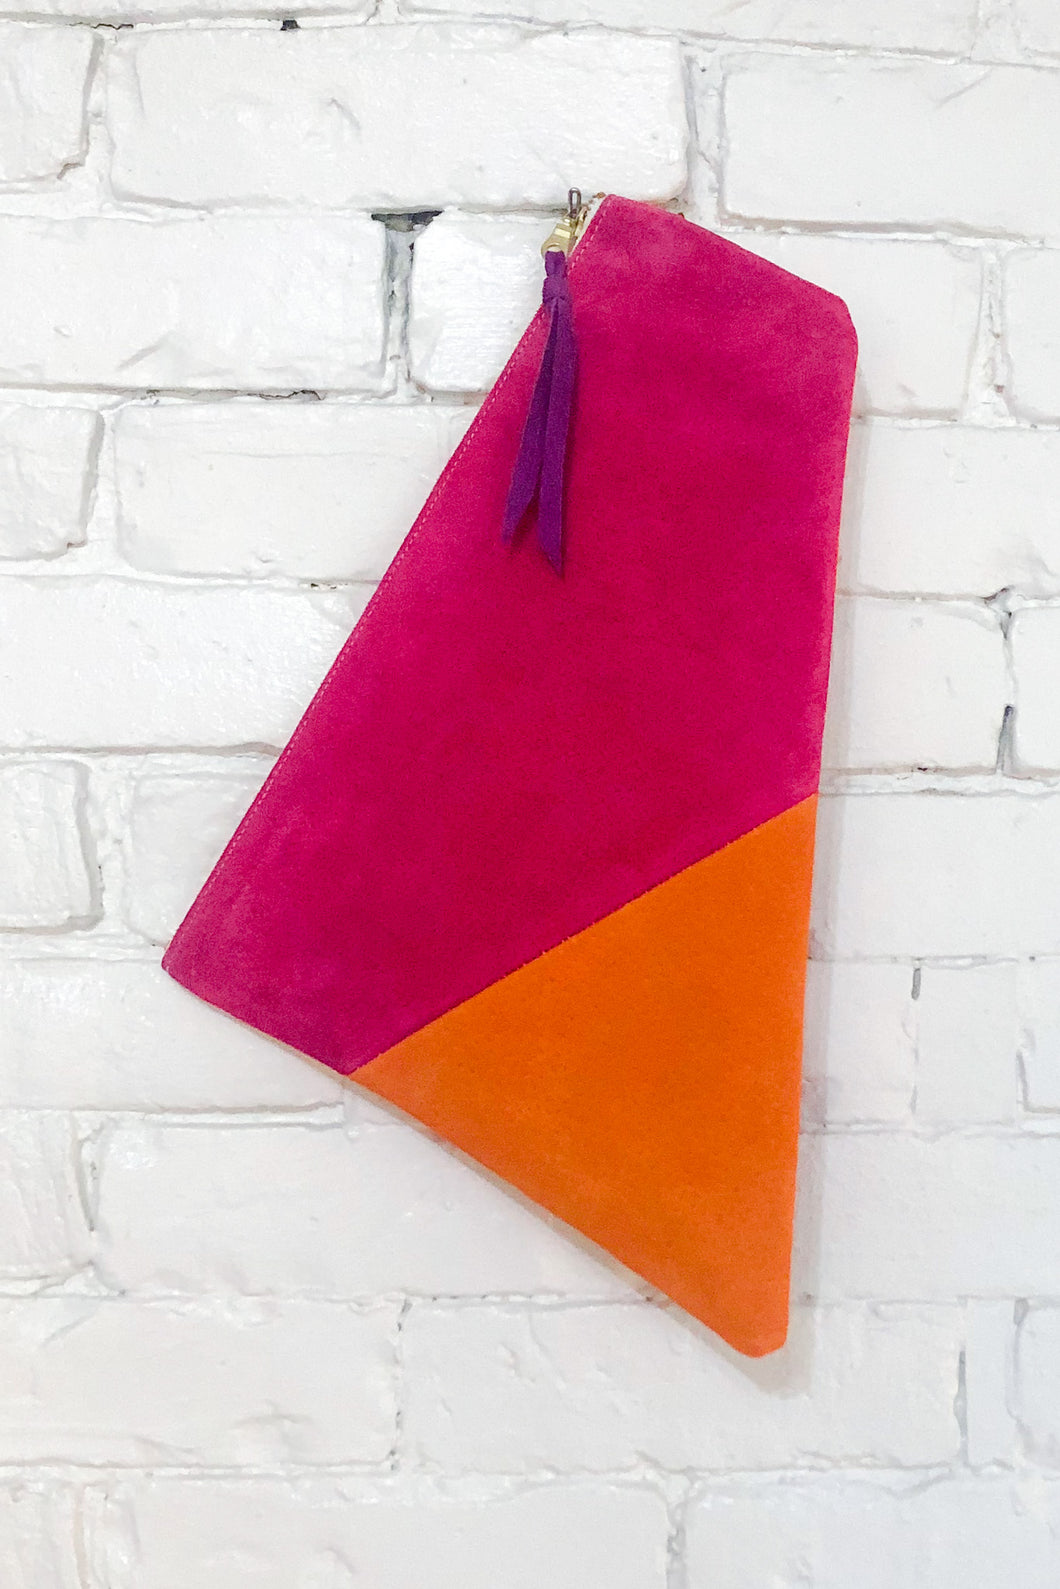 The Trapezoid (Apricot and Magenta)